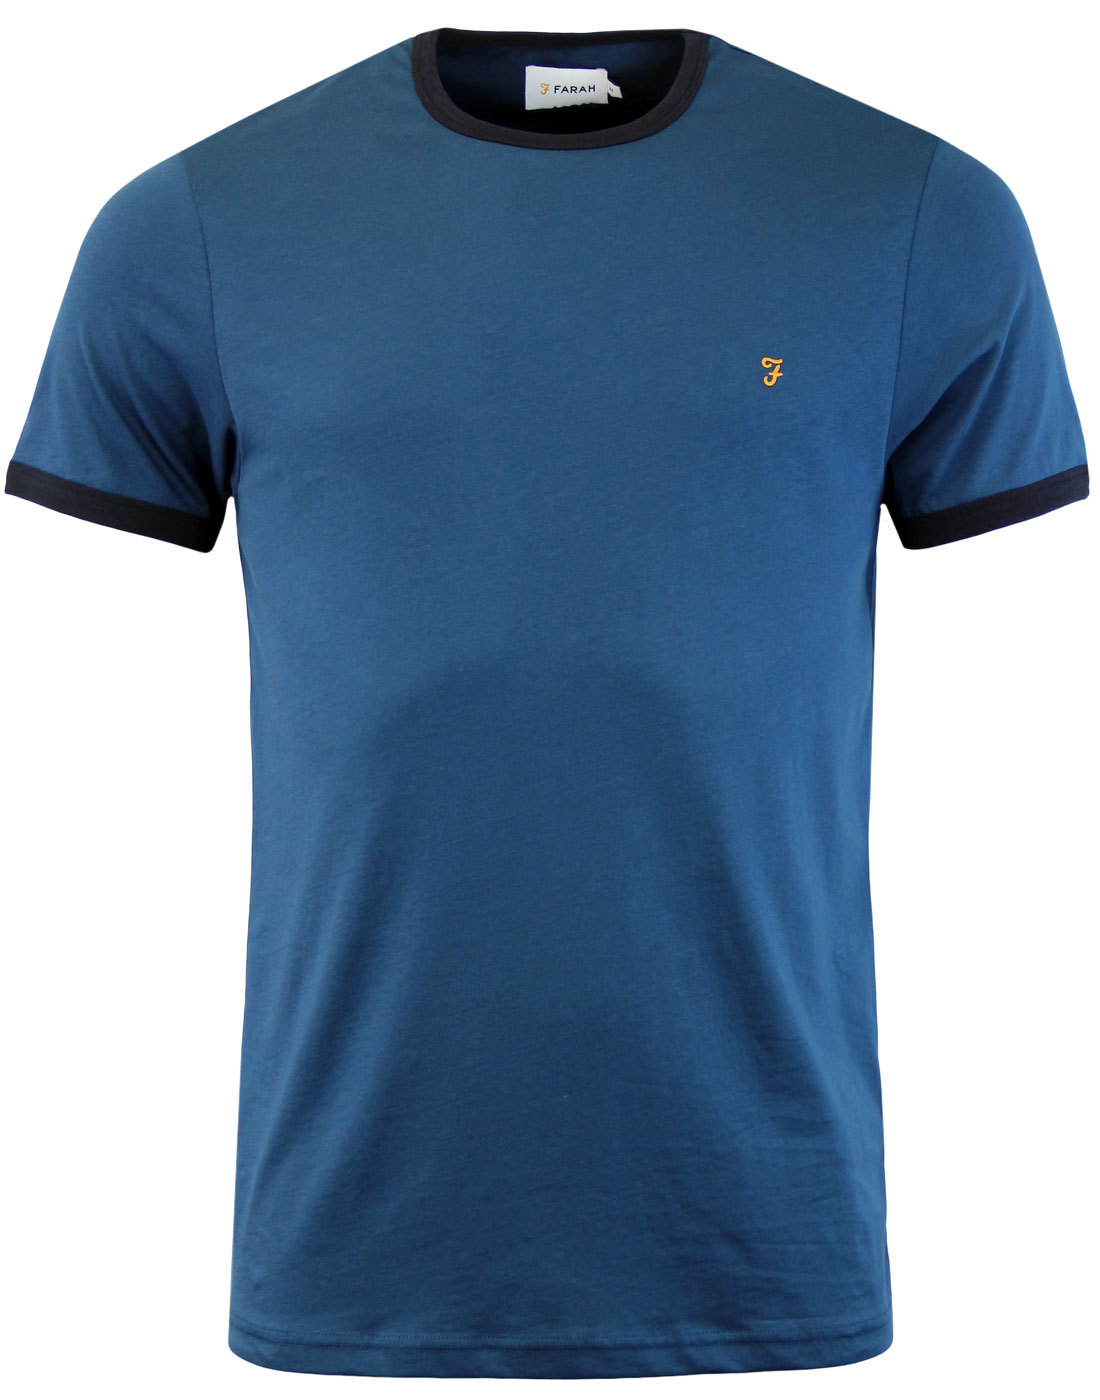 The Groves FARAH Retro Mod Ringer Tee - Atlantic